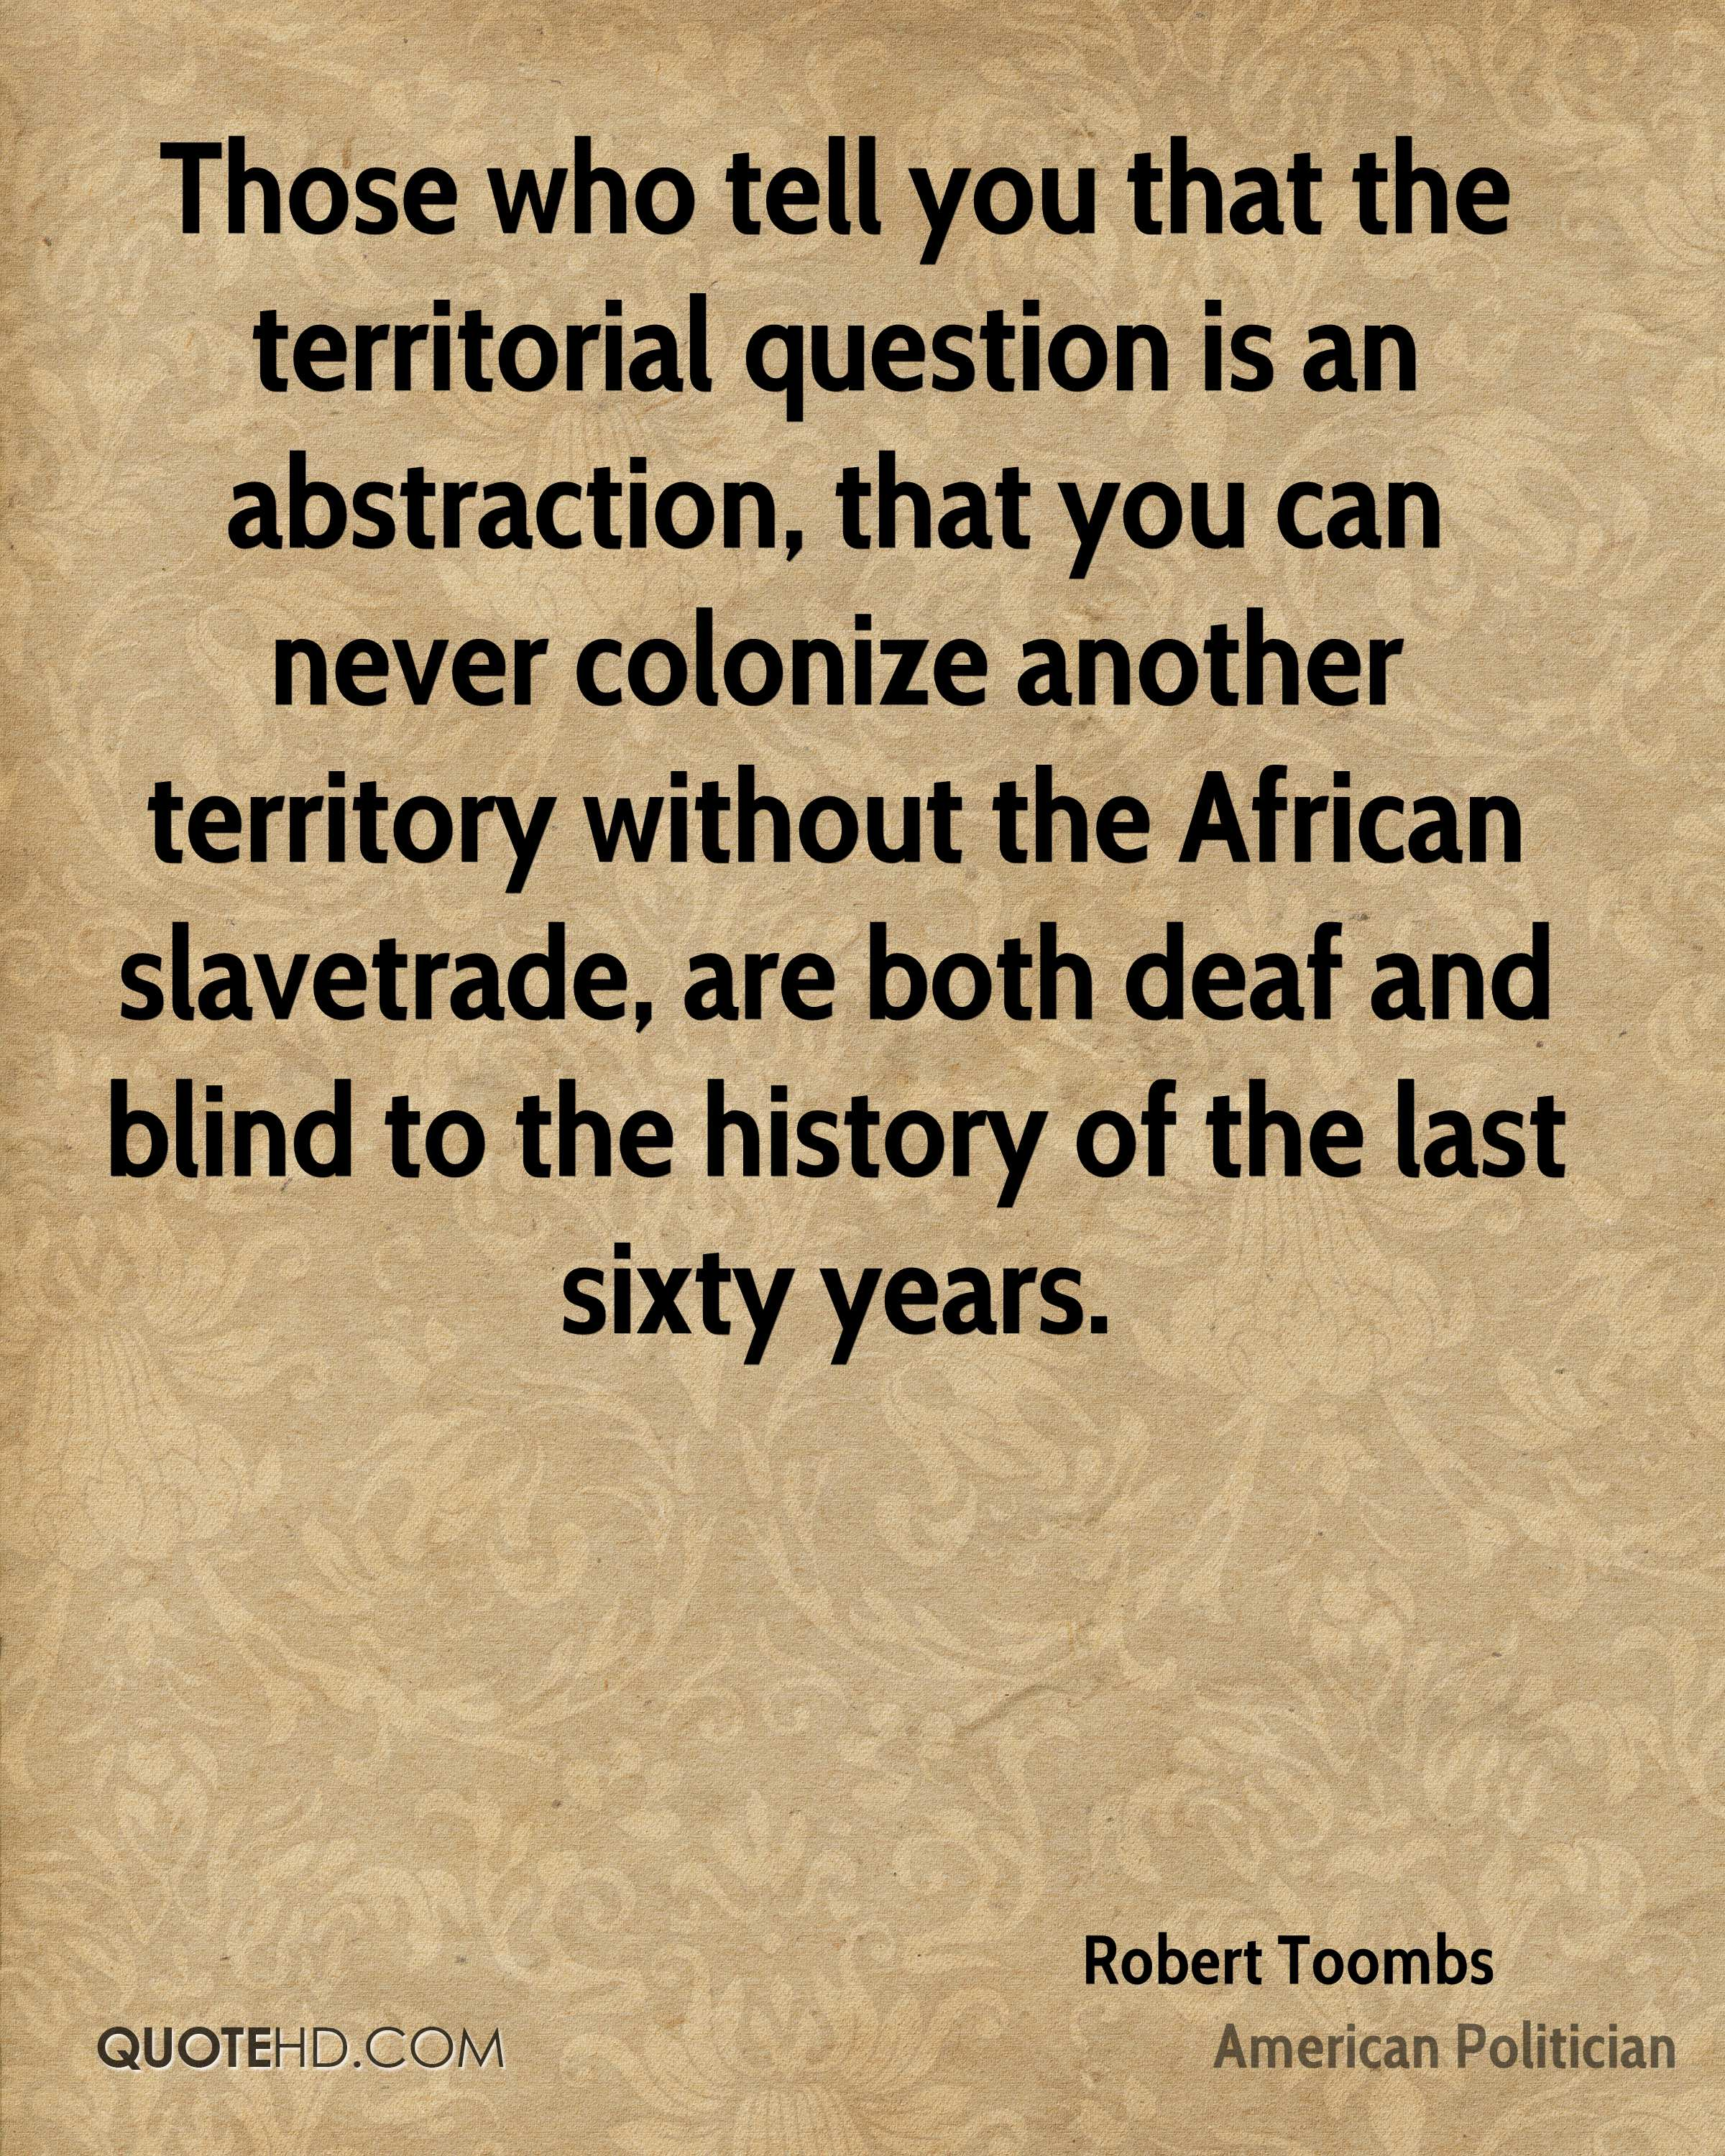 Those who tell you that the territorial question is an abstraction, that you can never colonize another territory without the African slavetrade, are both deaf and blind to the history of the last sixty years.